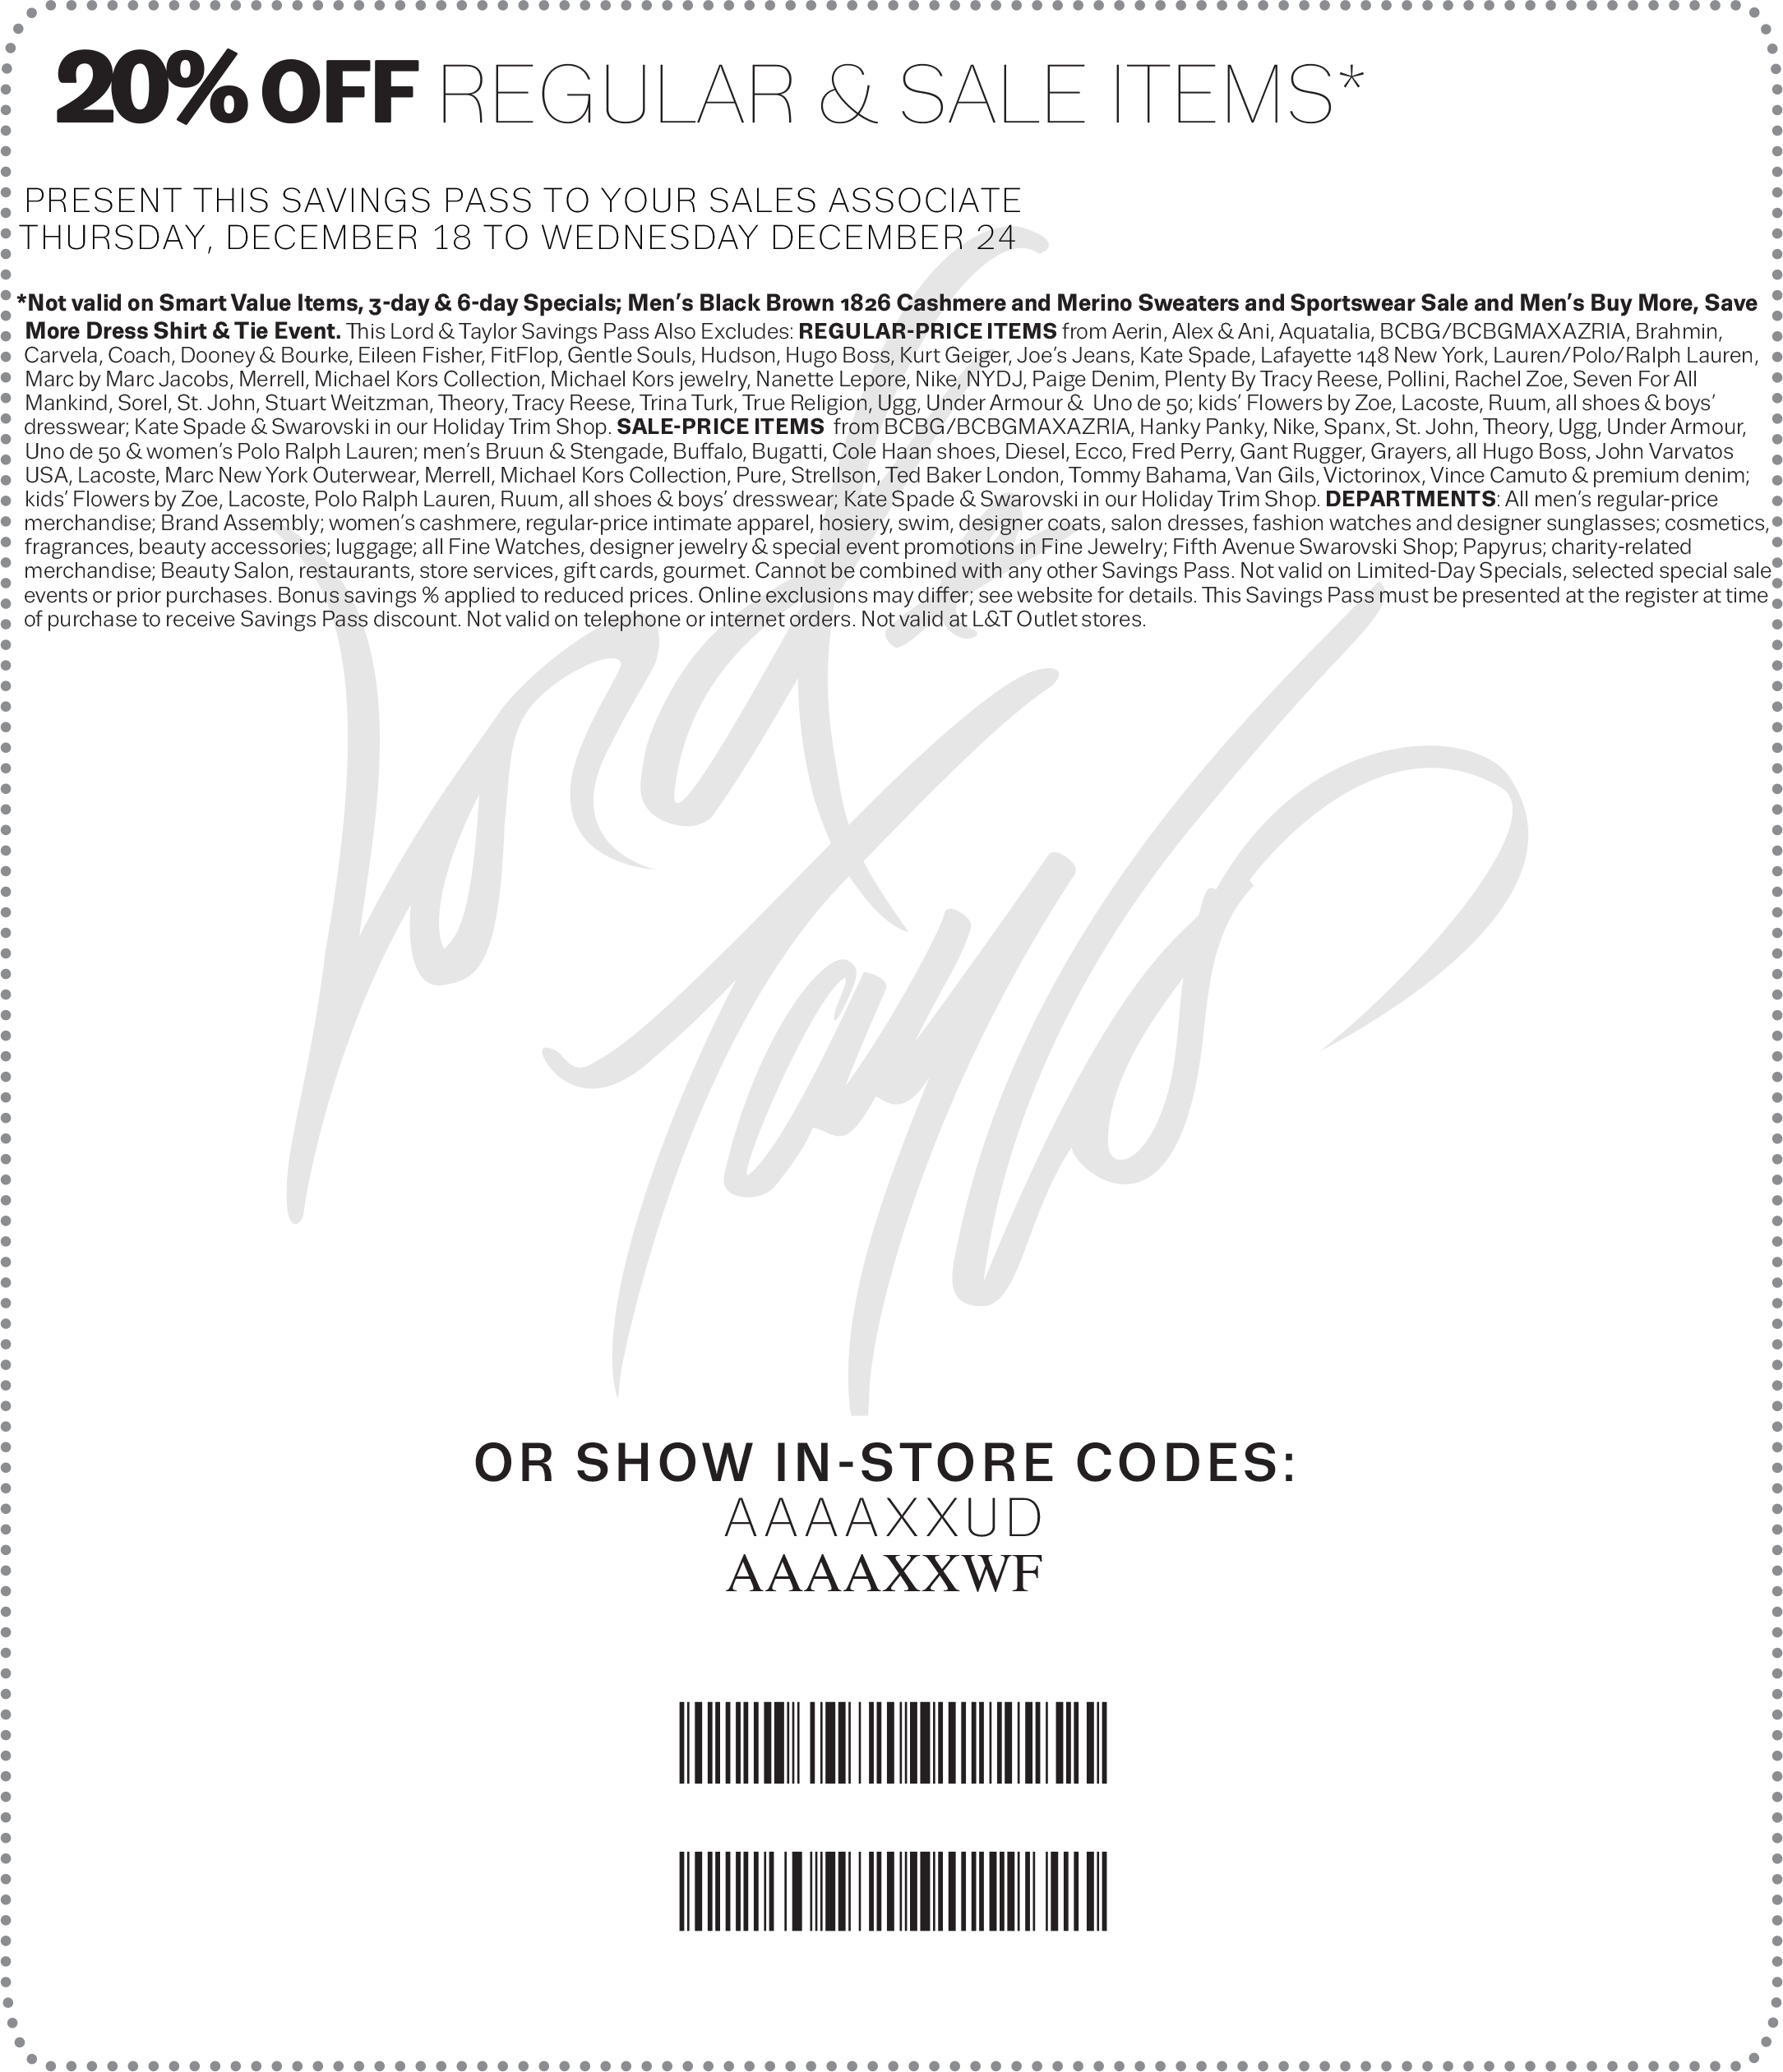 Lord & Taylor Coupon October 2016 20% off at Lord & Taylor, or online via promo code GIFT